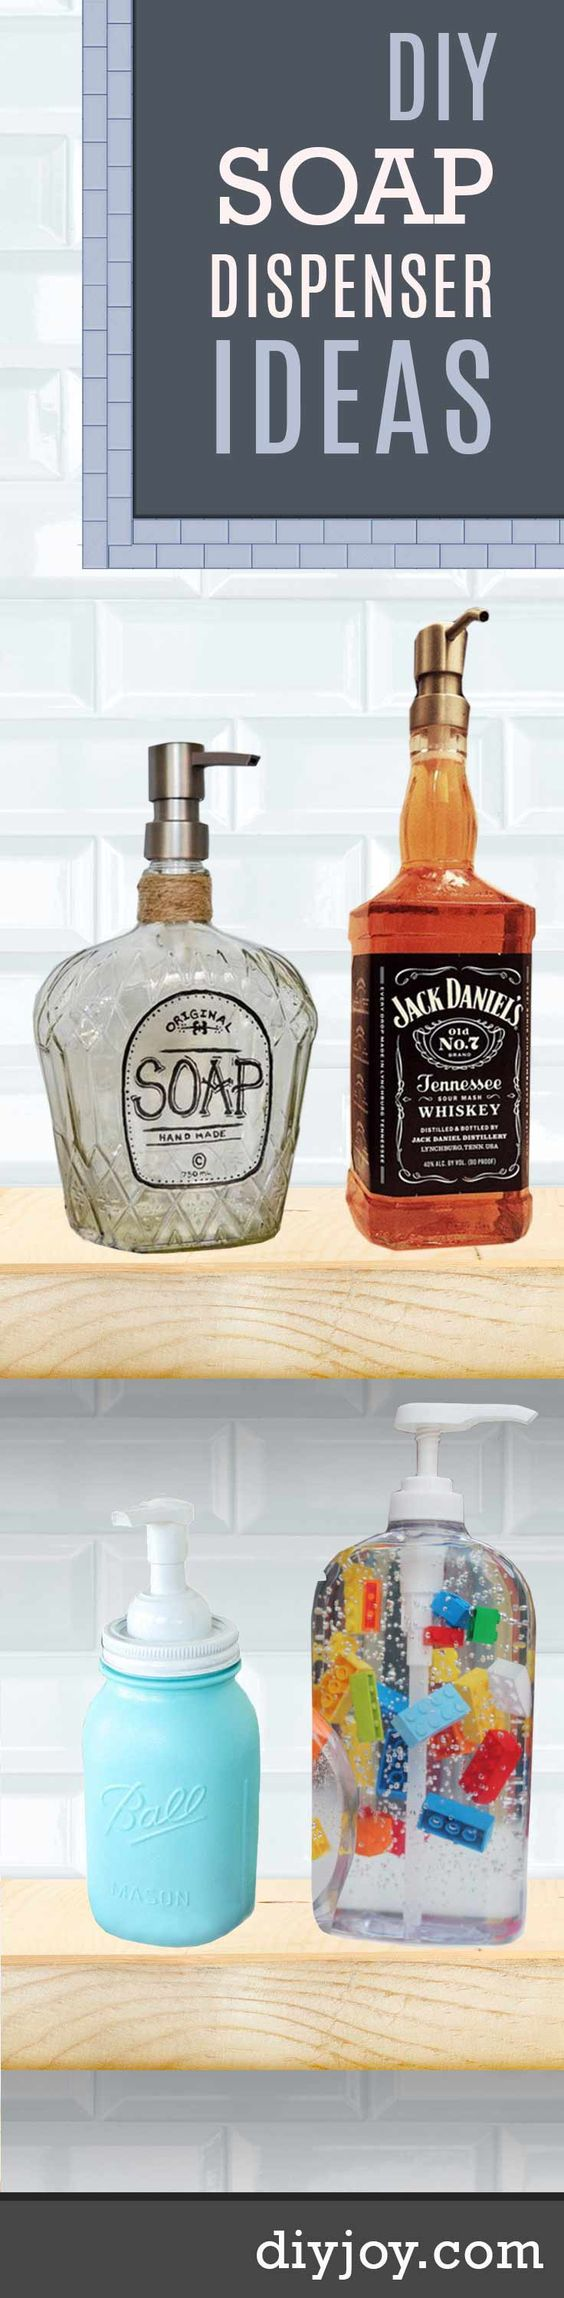 11 diy soap dispensers to dress up your sink do it yourself my website and liquor - Diy soap dispensers ...